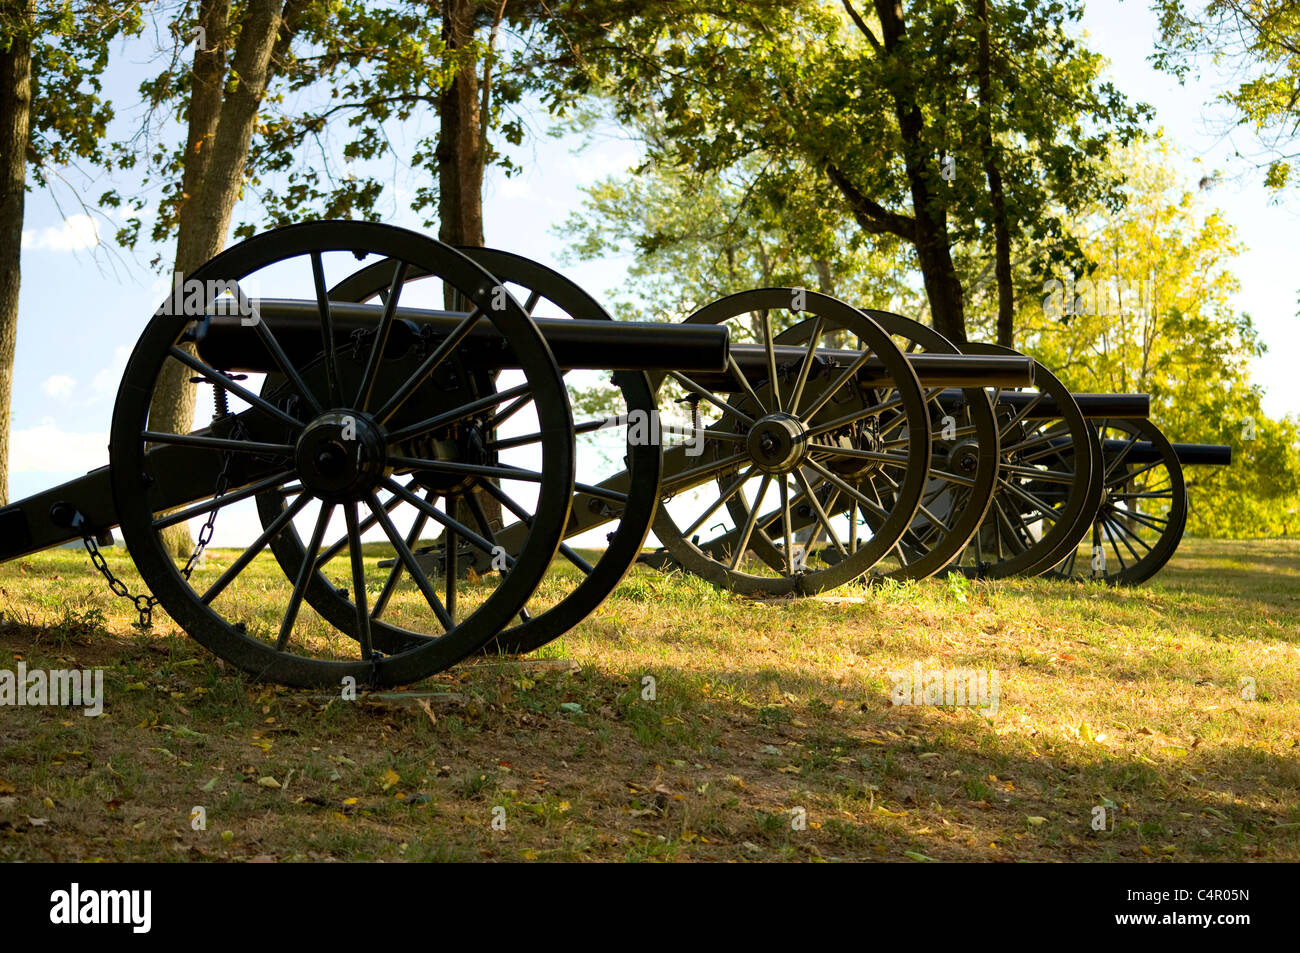 Cannons at Bolivar Heights Battlefield at Harpers Ferry, West Virginia - Stock Image